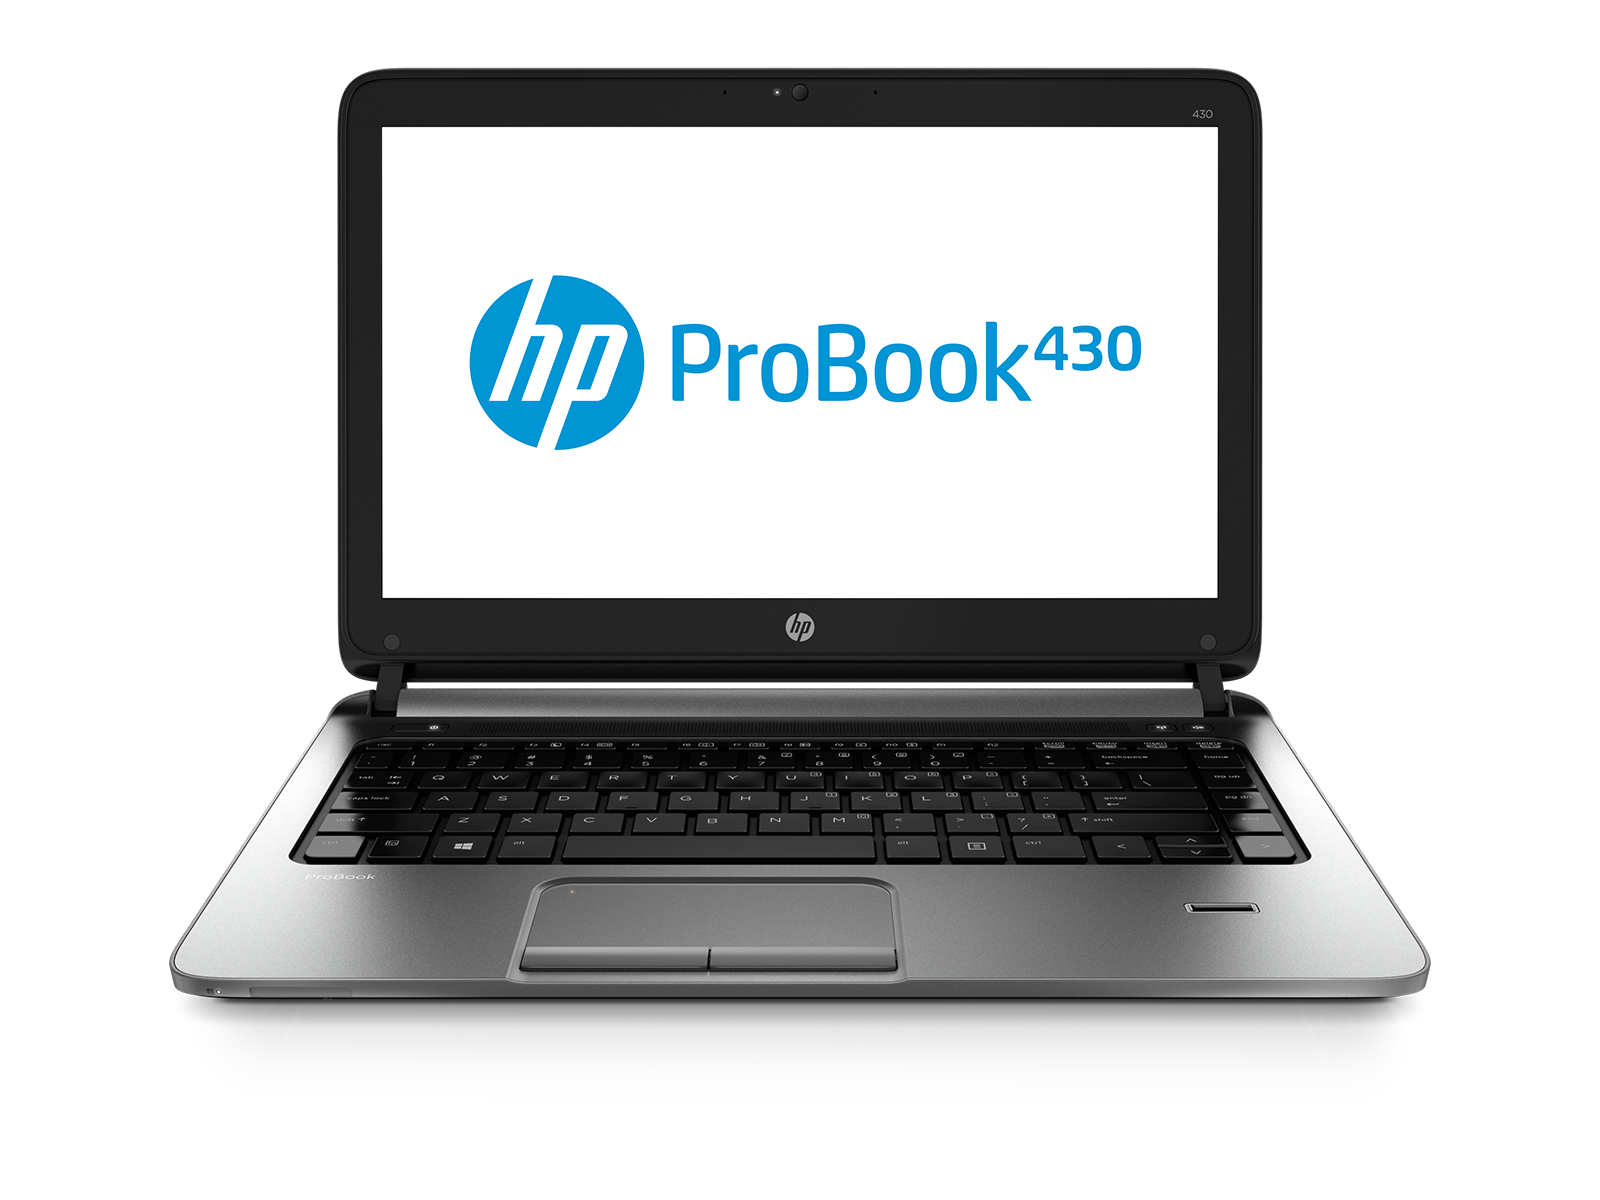 laptop-hp-probook430-2